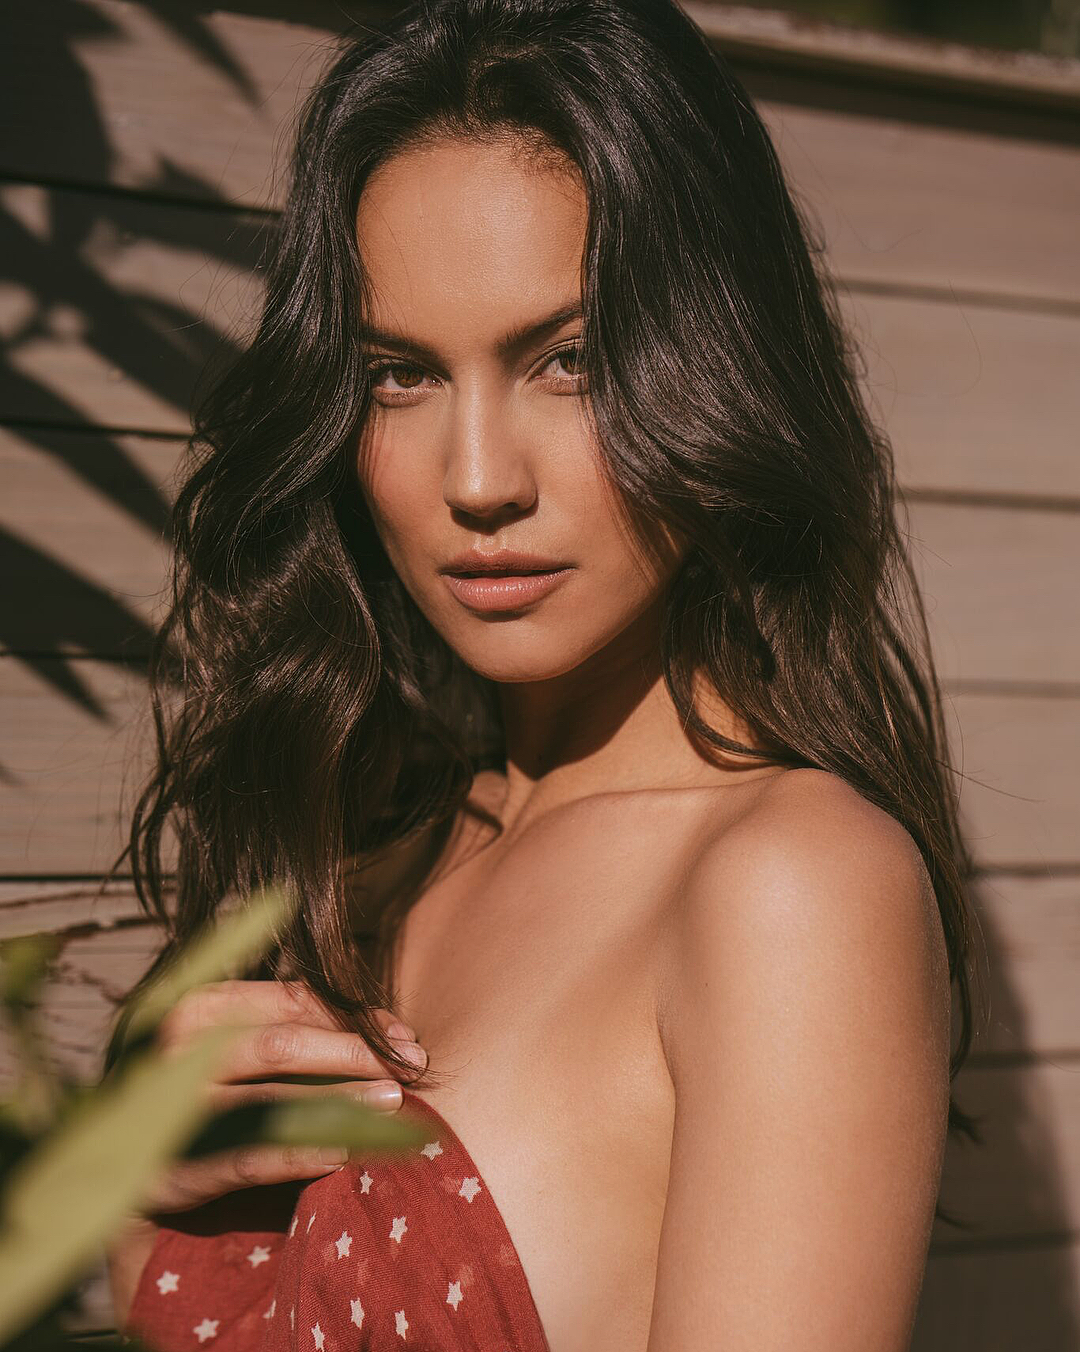 Rachelle Goulding is a model that appeared in Prince Royce El Clavo